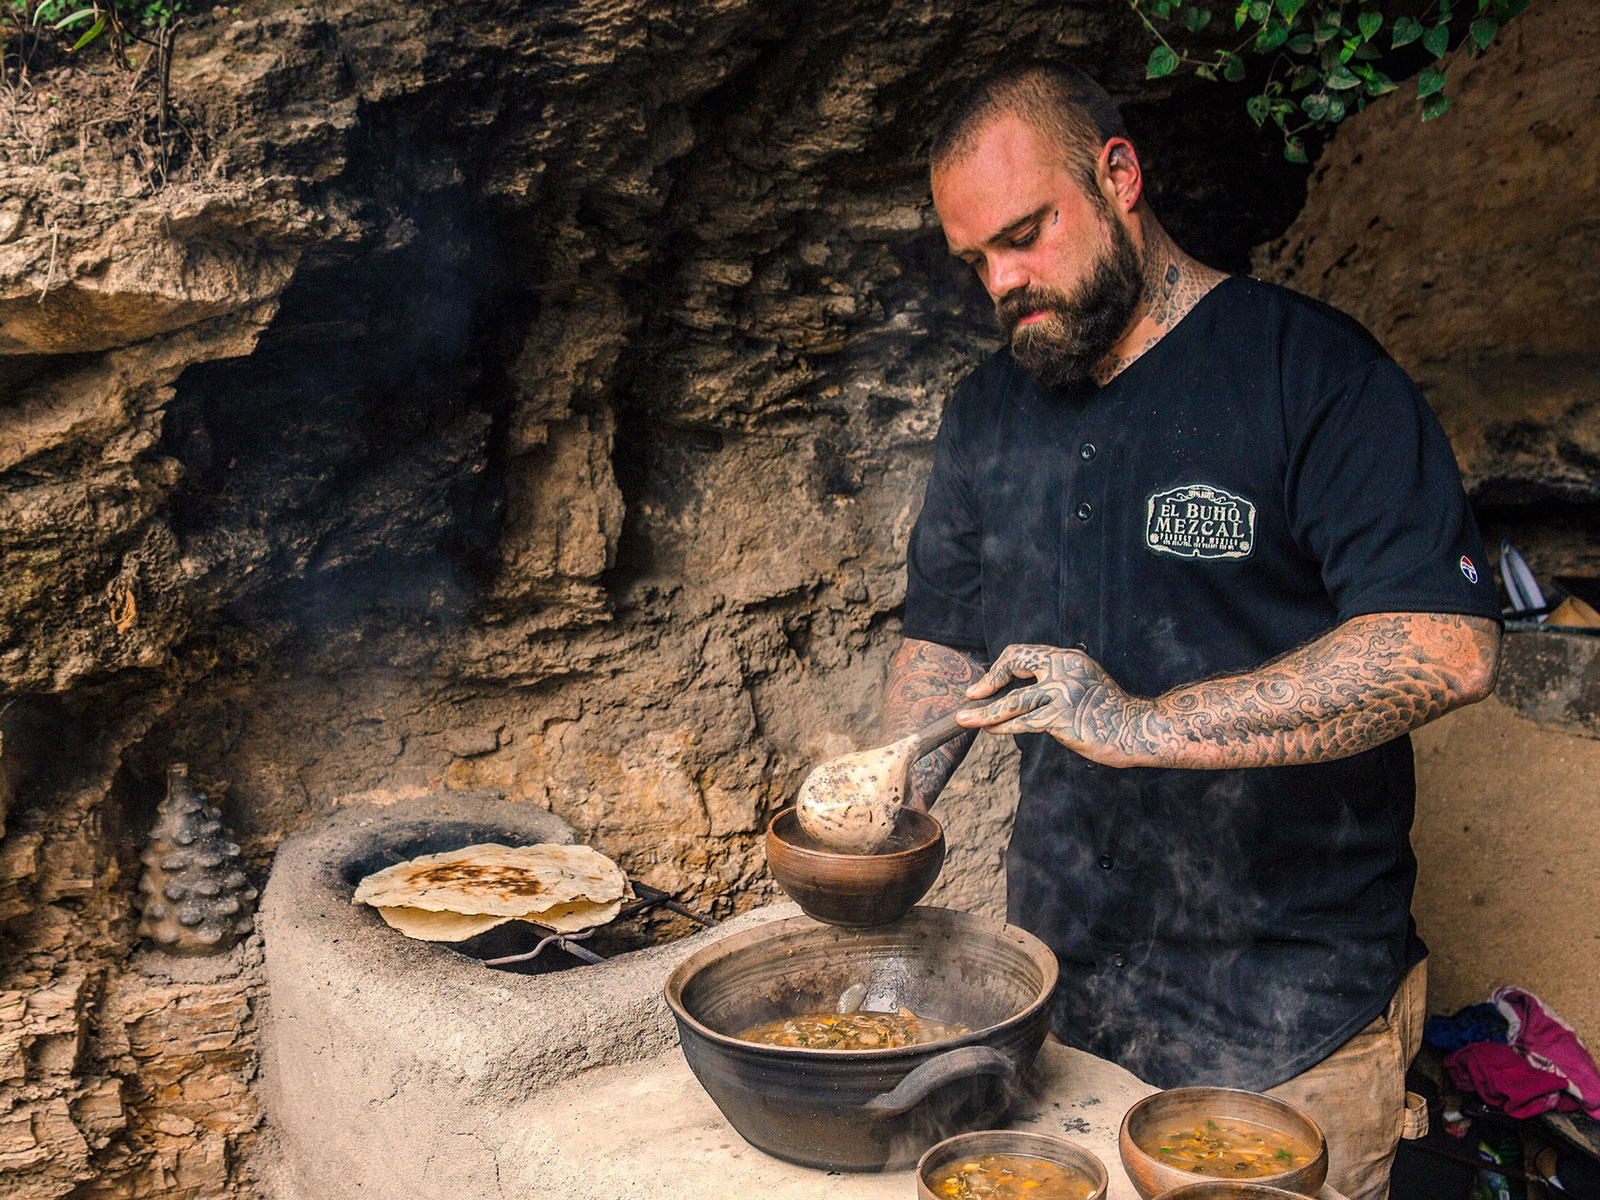 EC: This Chef Is Covered in Taco-Related Tattoos